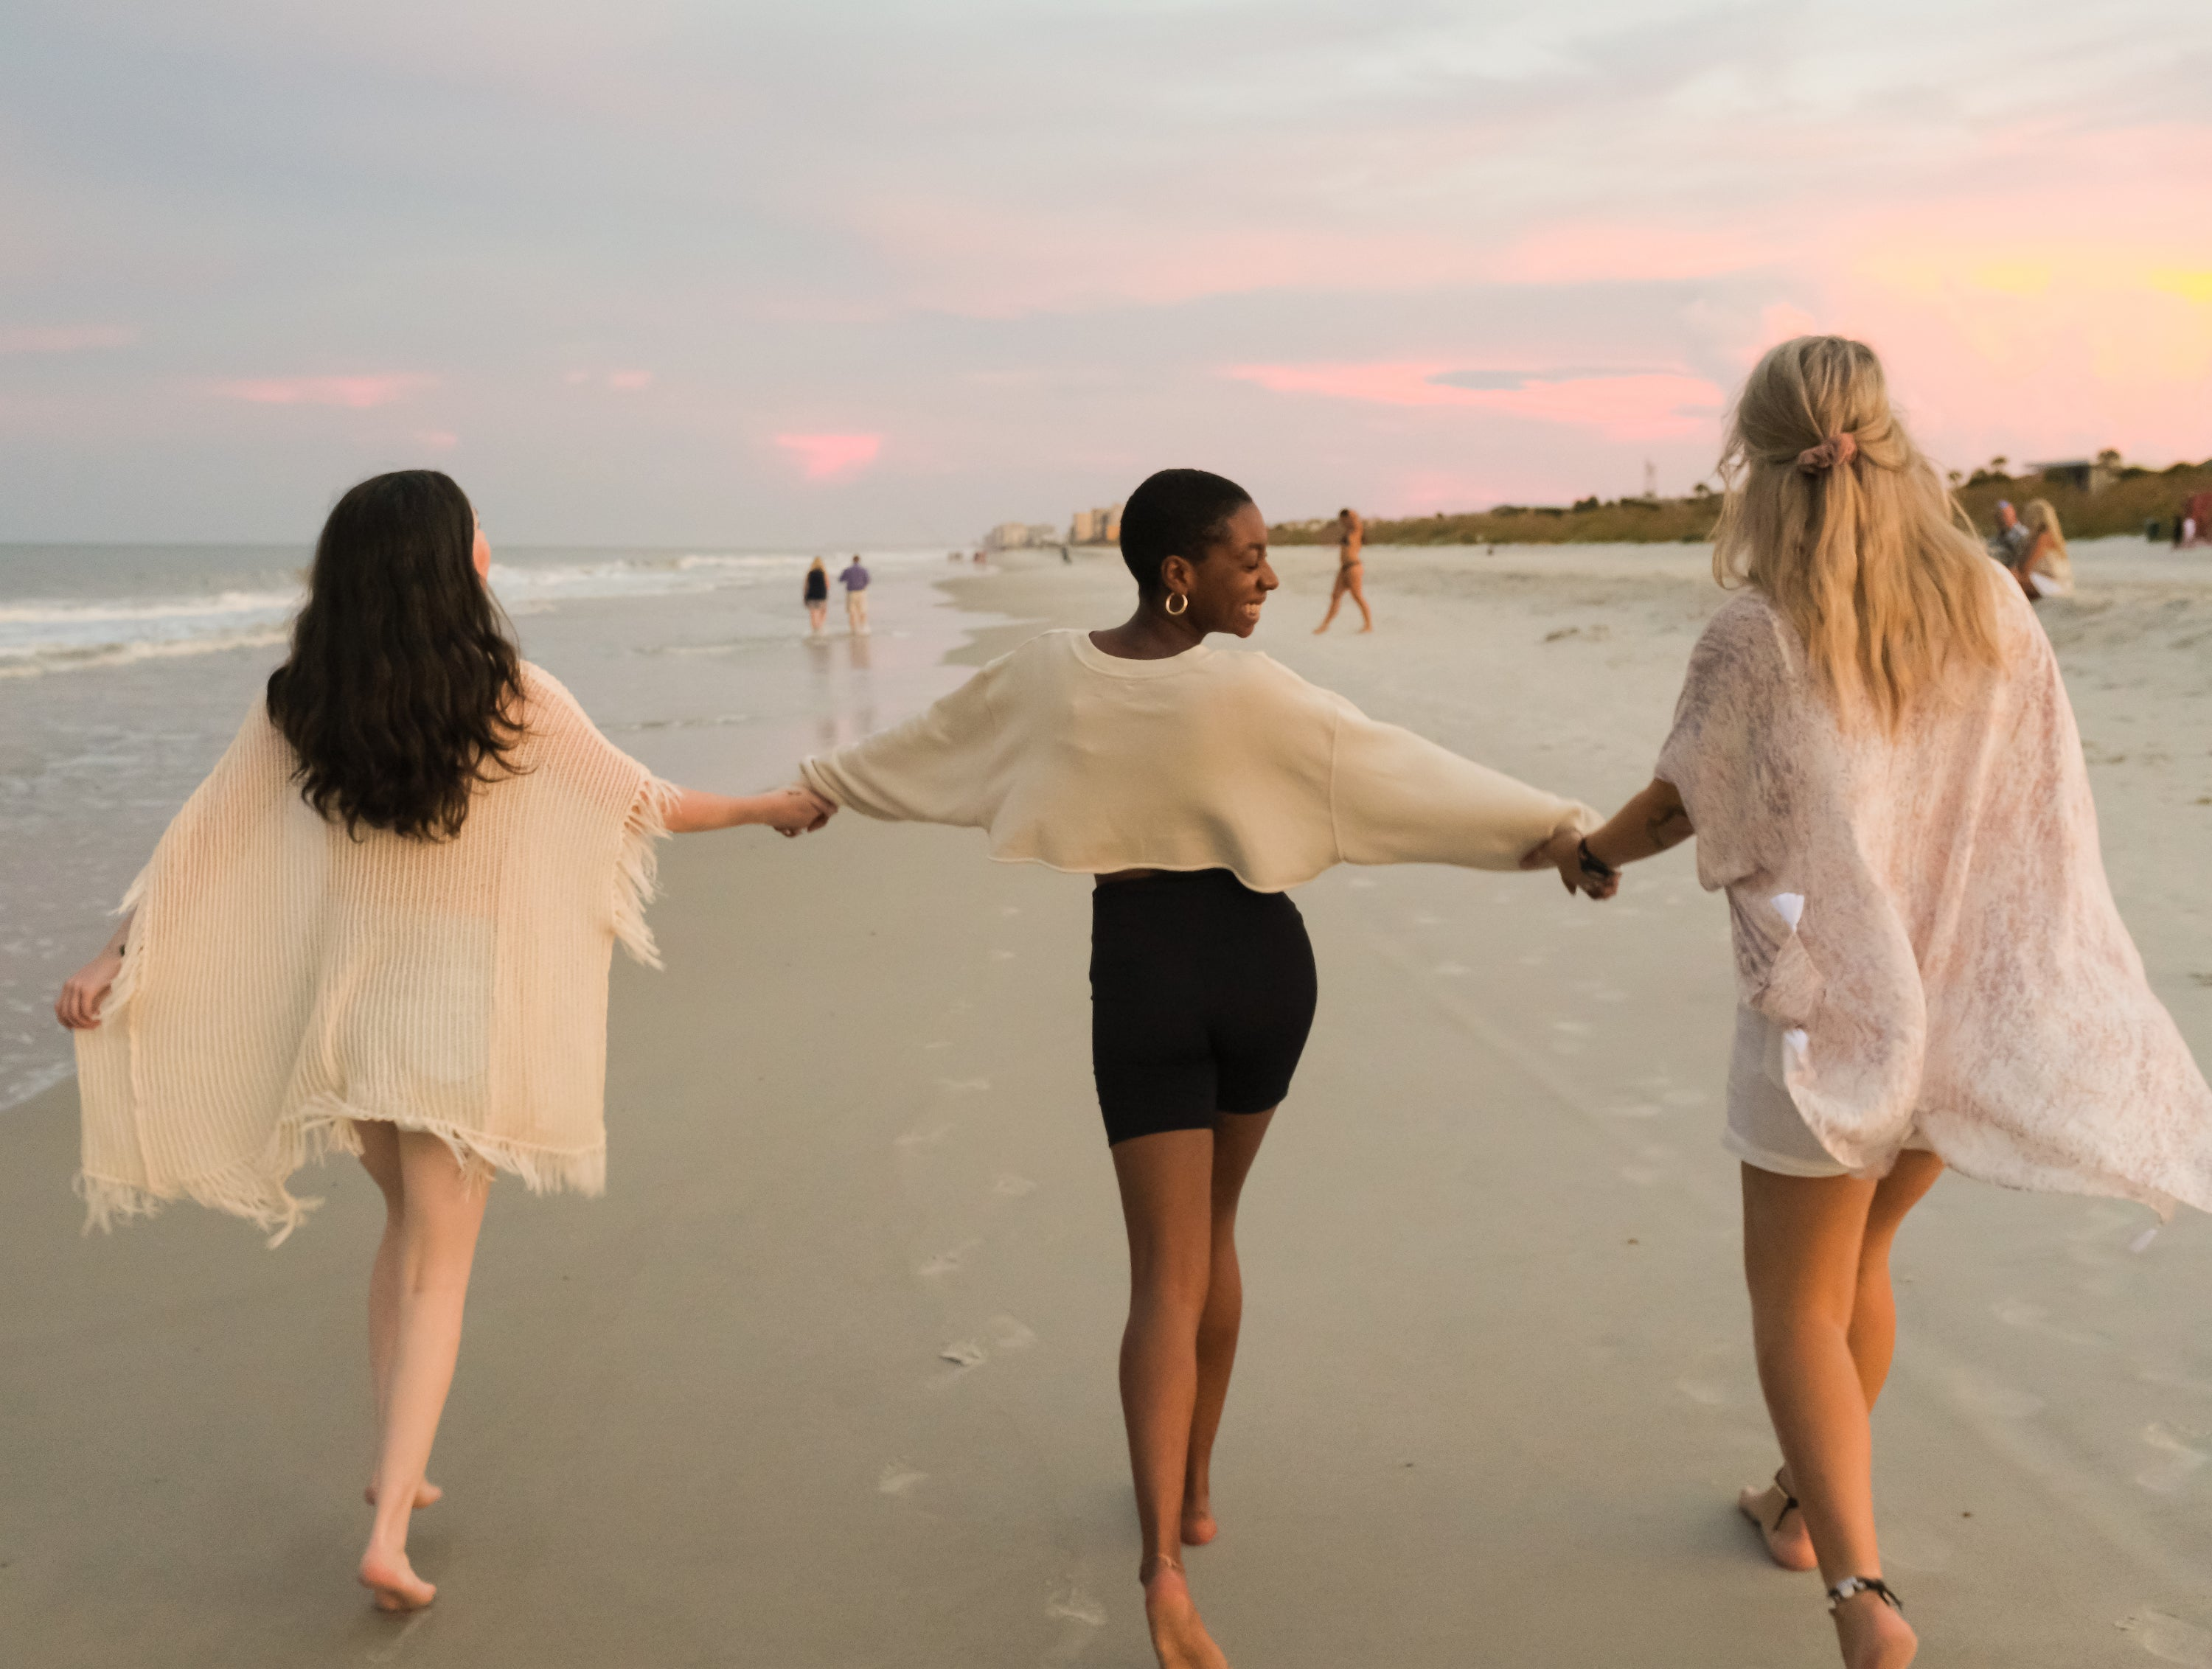 East Coast Beach in the USA at Sunset with three best friends holding hands and skipping down the beach. Pink hues, relaxing vibe.